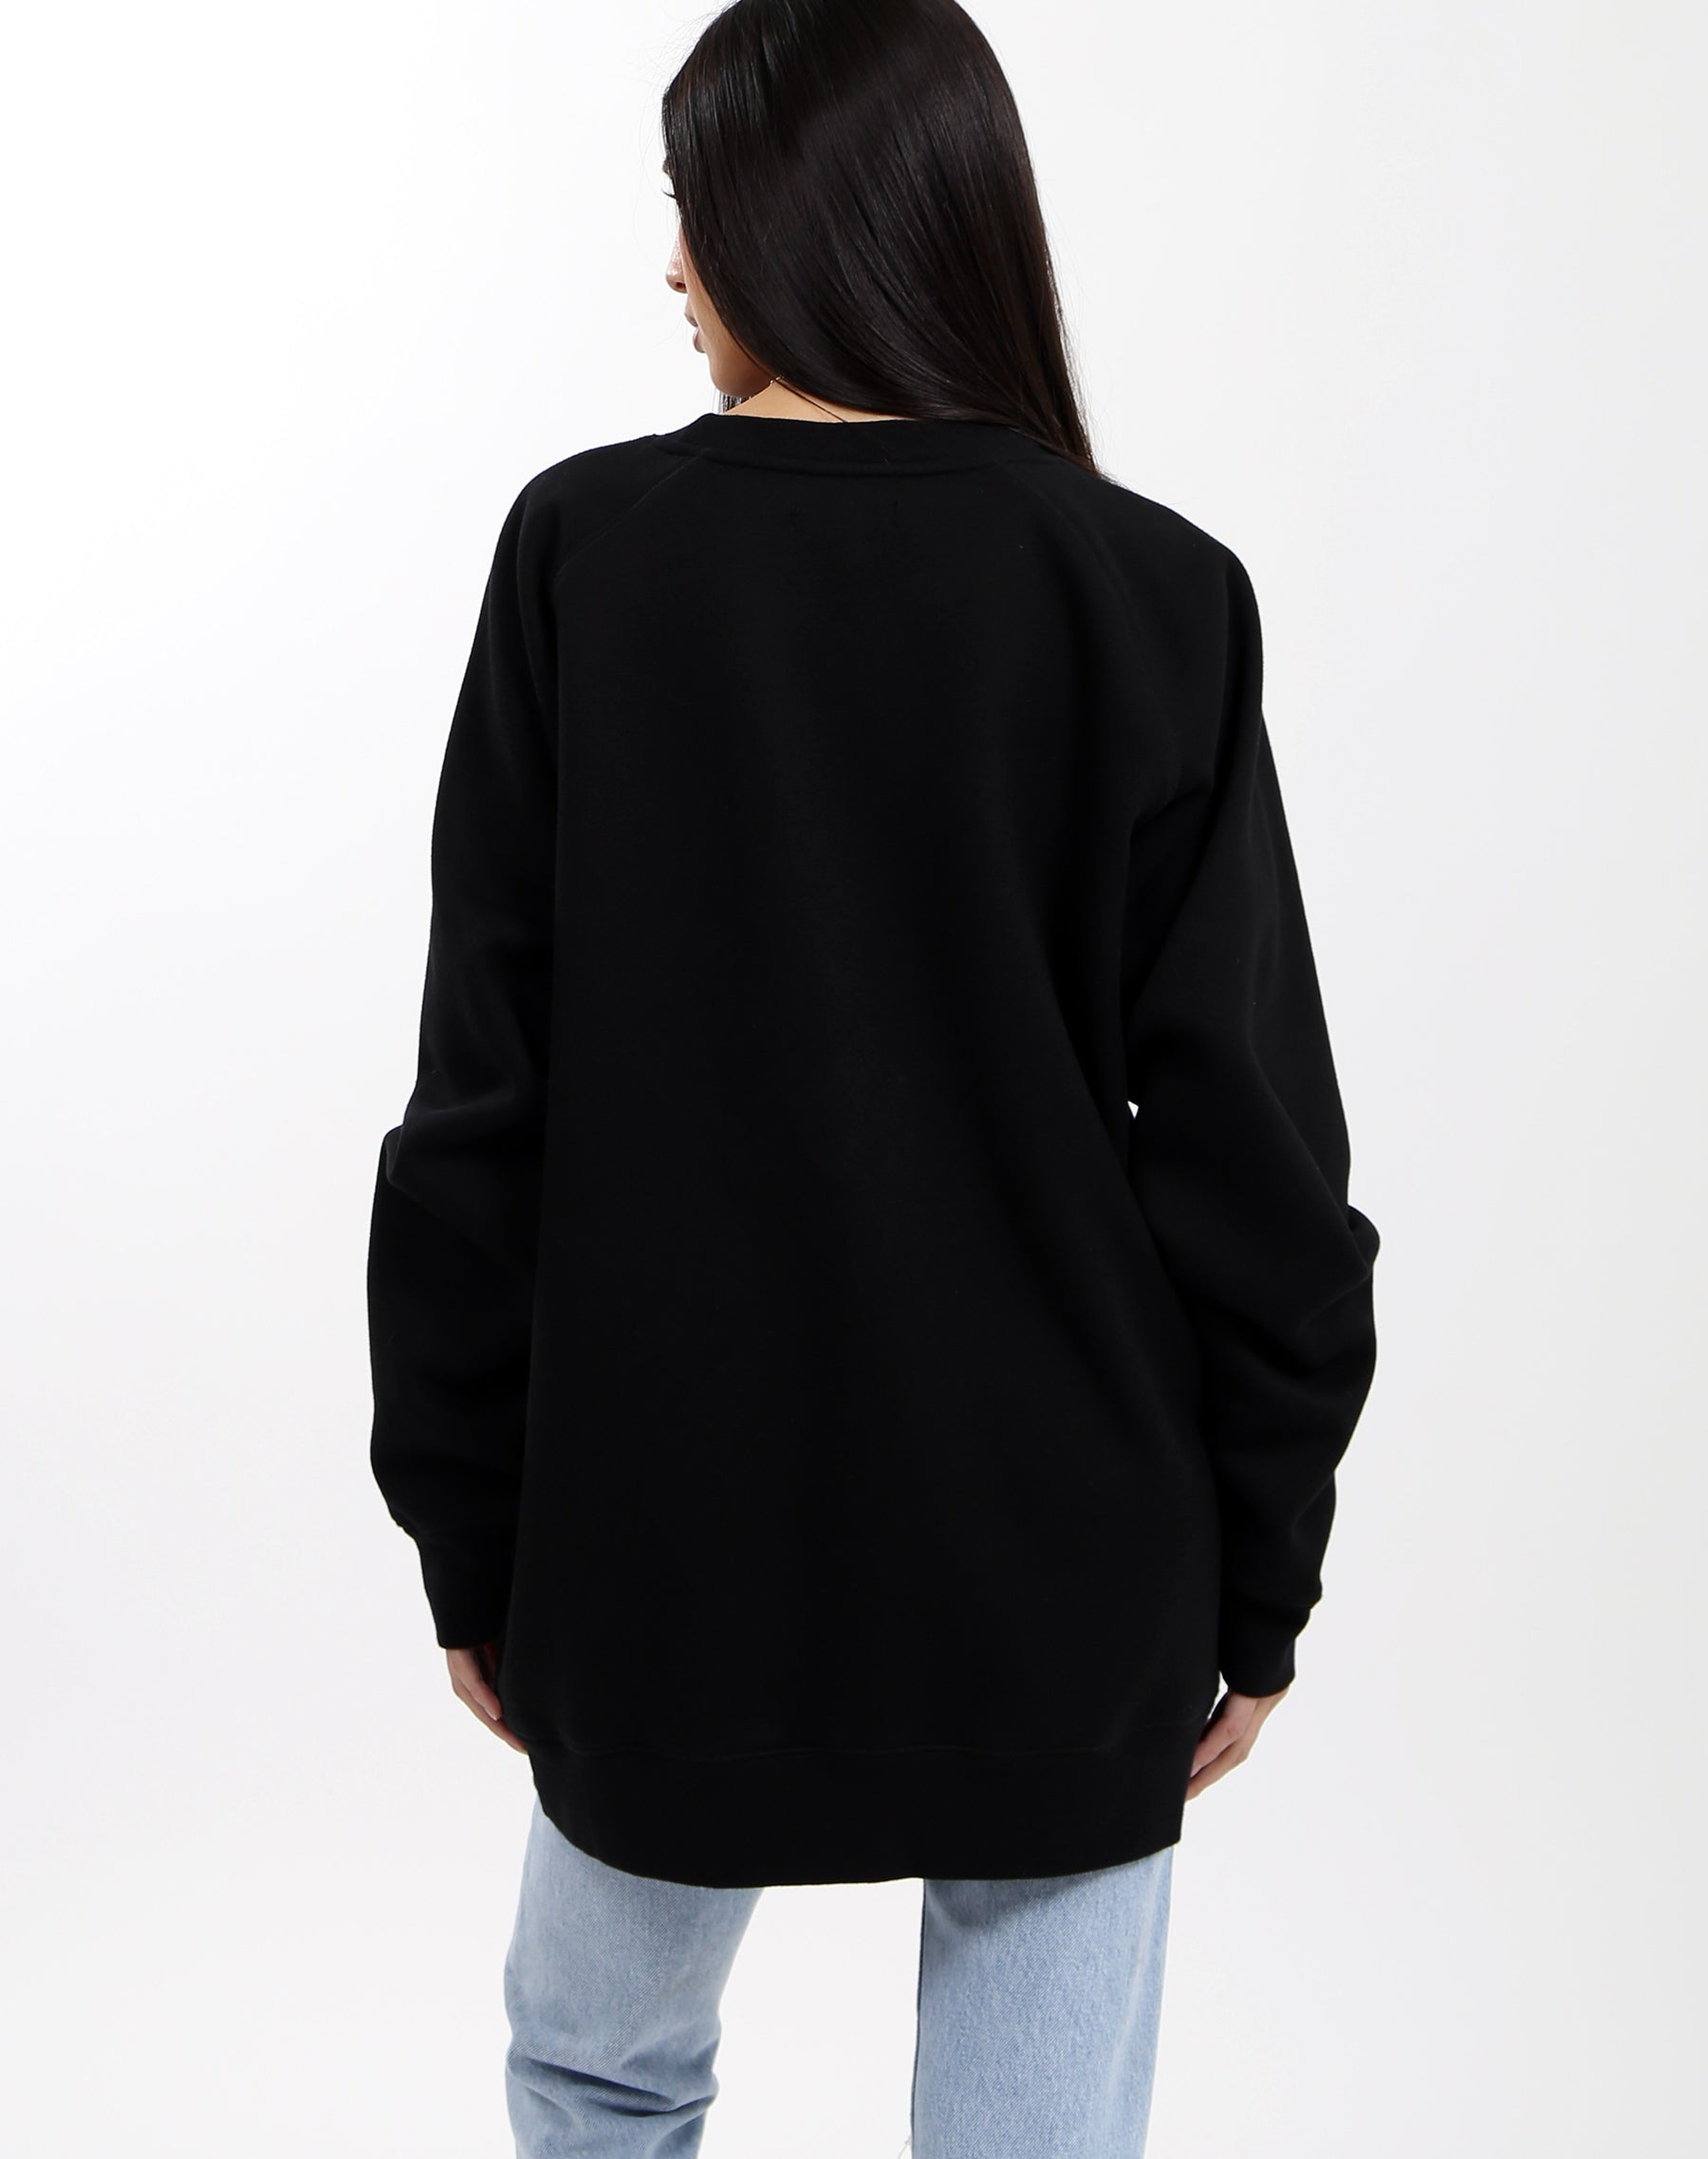 Photo of the back of the Babes Club big sister crew neck sweater in black by Brunette the Label.